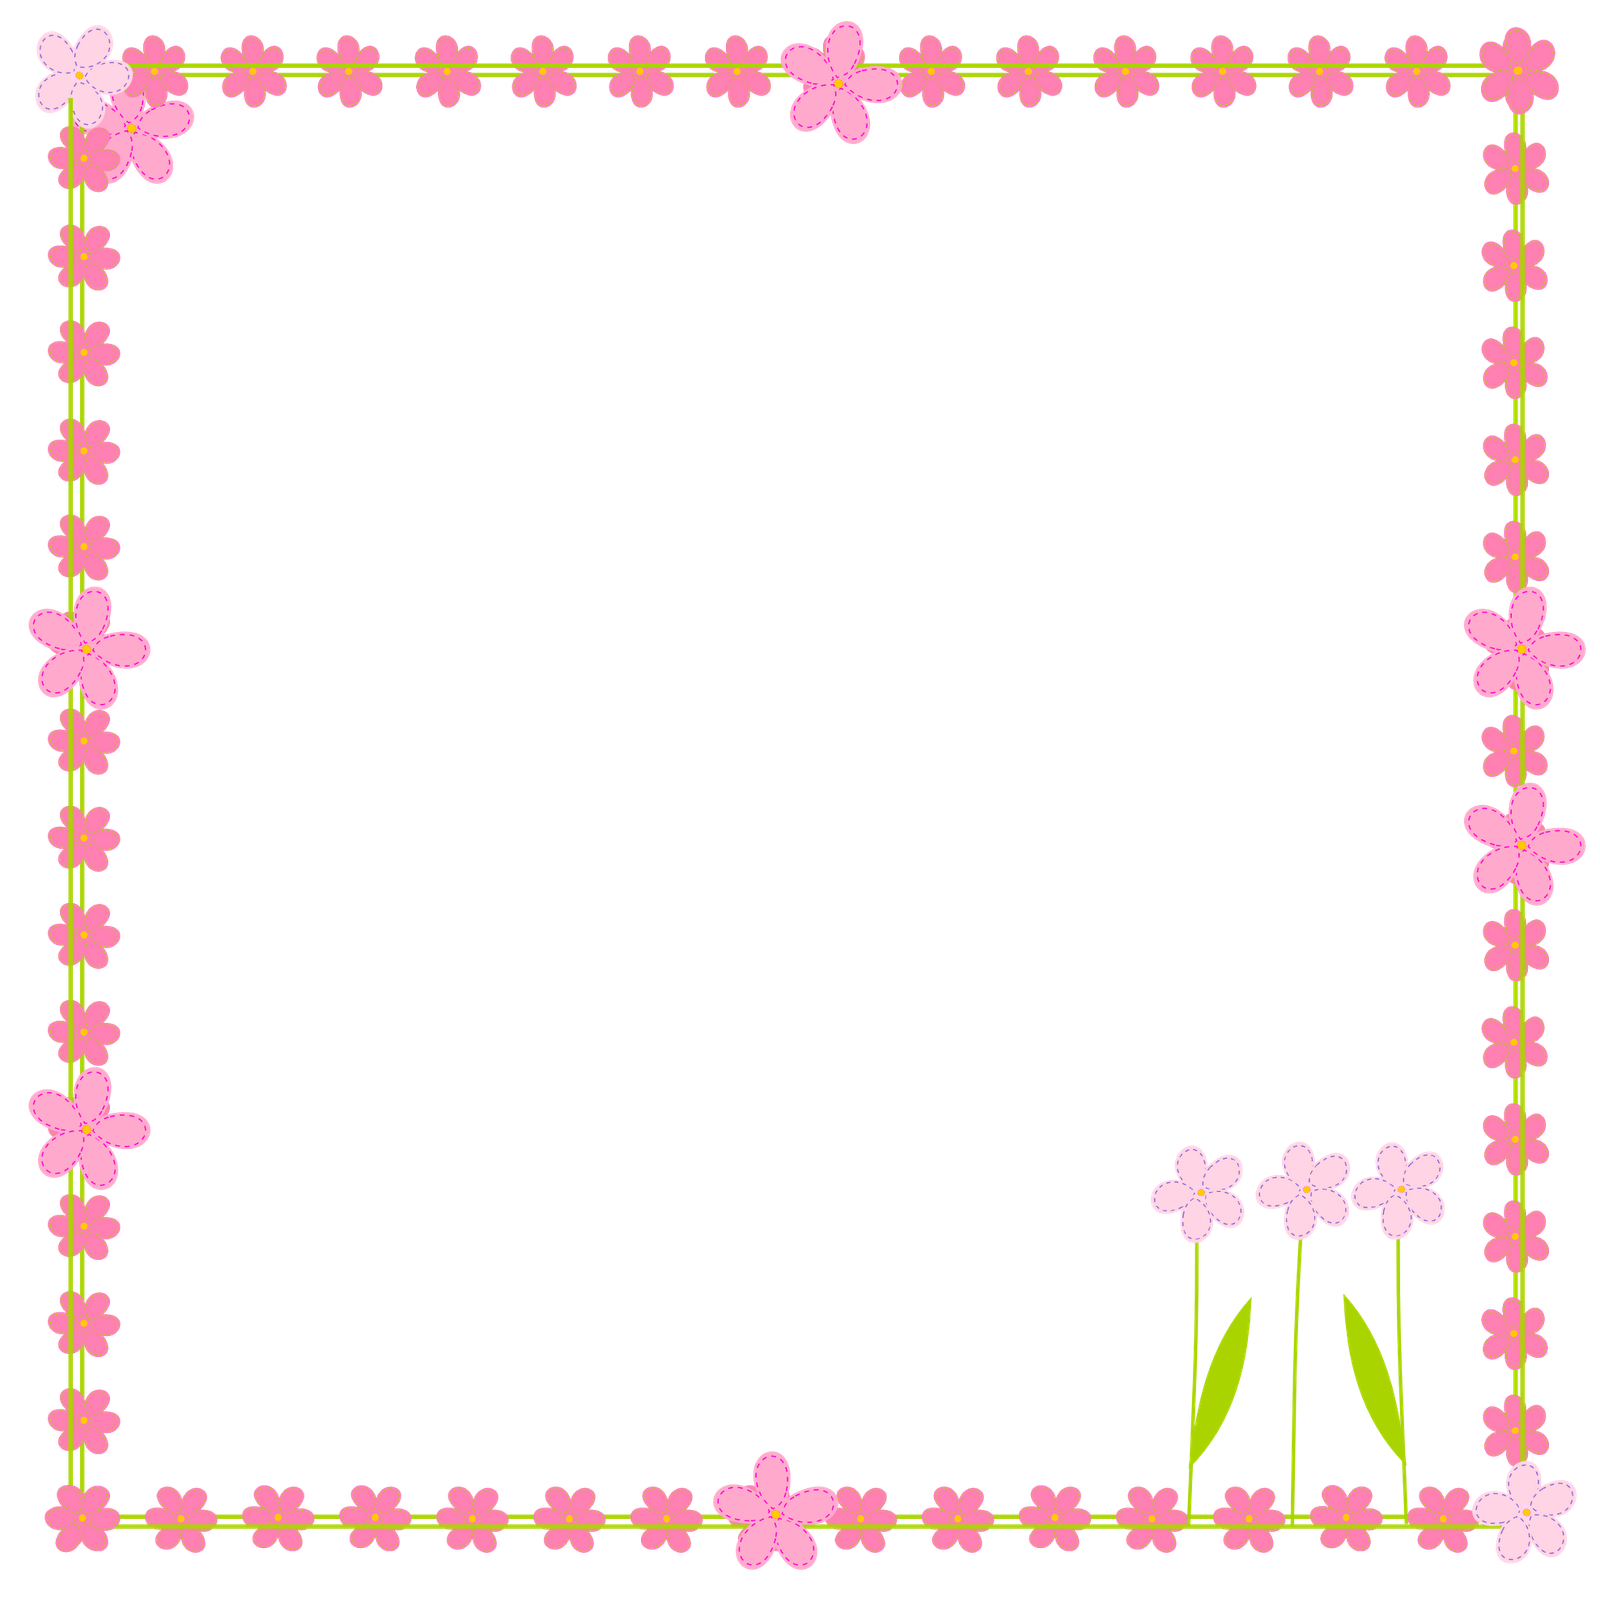 Free flower borders clipart vector download free digital flower border scrapbooking elements - Clipart Rahmen ... vector download